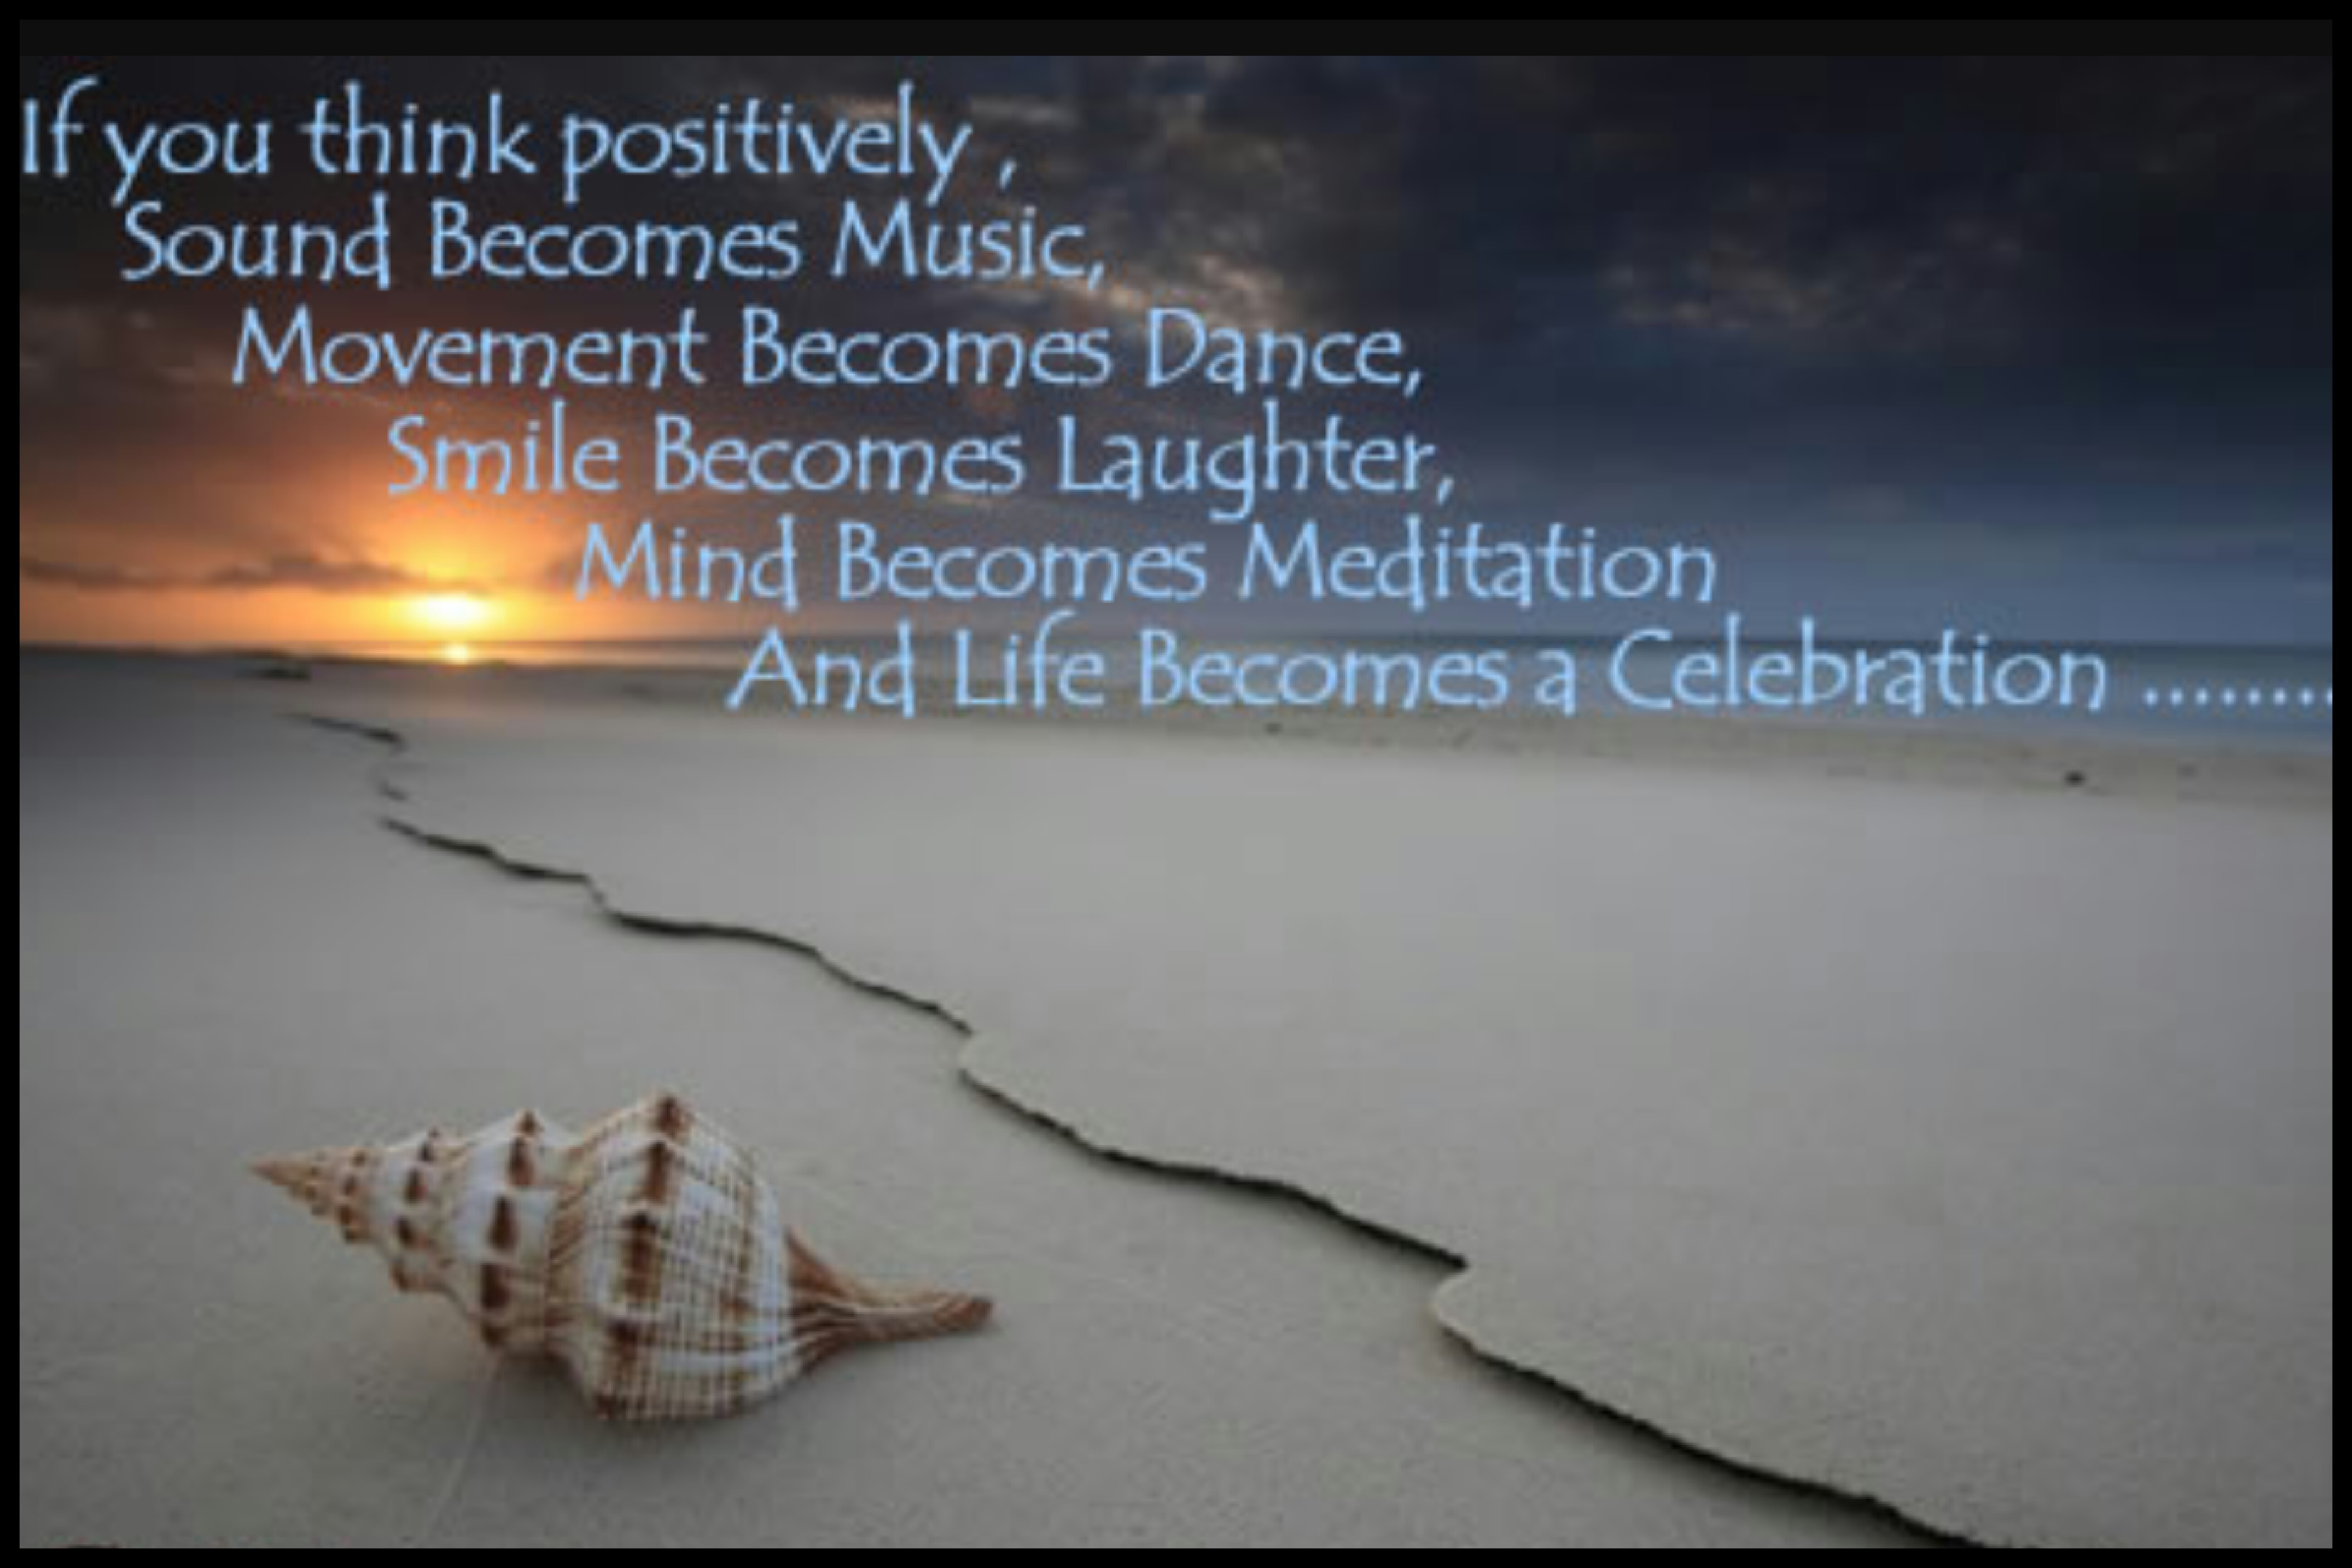 Celebrate Life Quotes Positive Thinking Benefits  Life In Recovery  Talking Sober